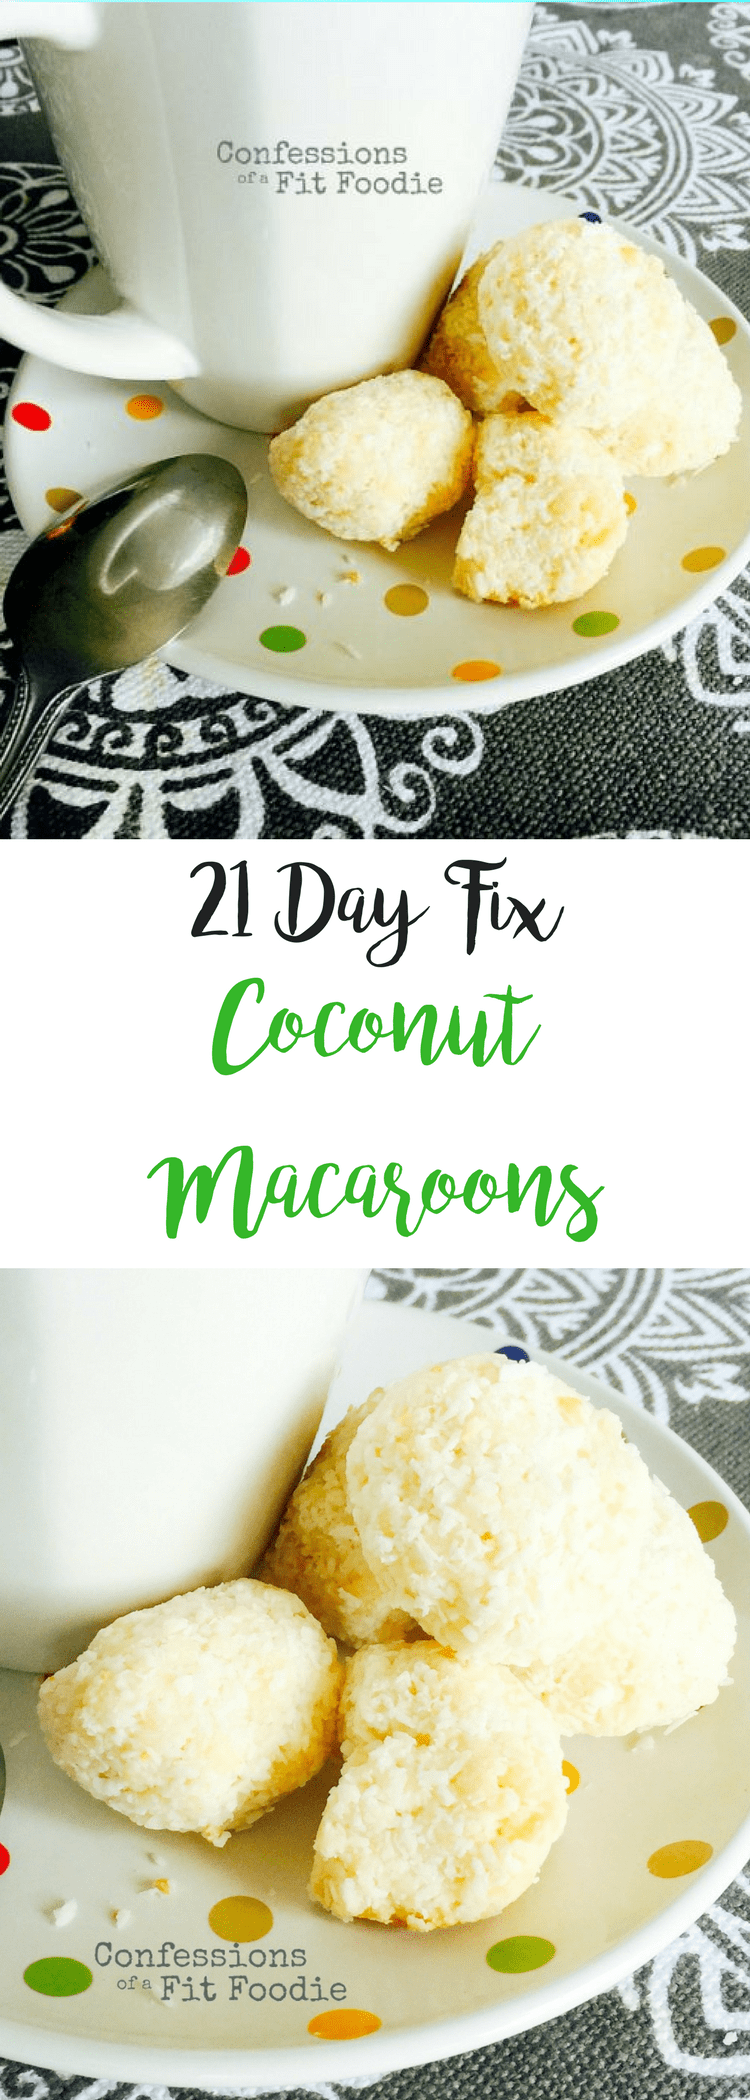 Coconut Macaroons {21 Day Fix} | Confessions of a Fit Foodie